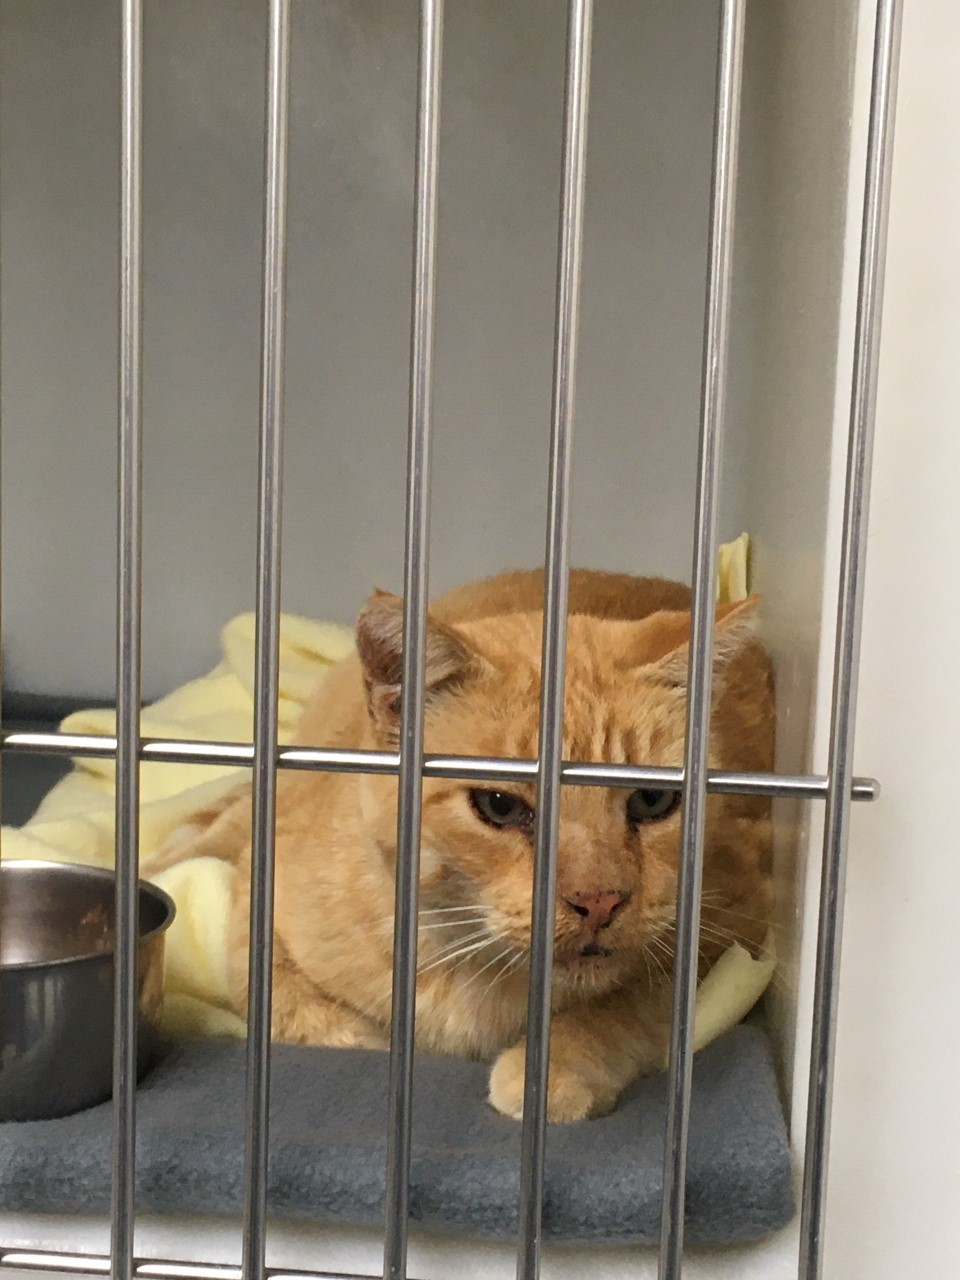 This stray cat turned up at a La Grande resident's home about a month ago. Posted 9/26/2020.